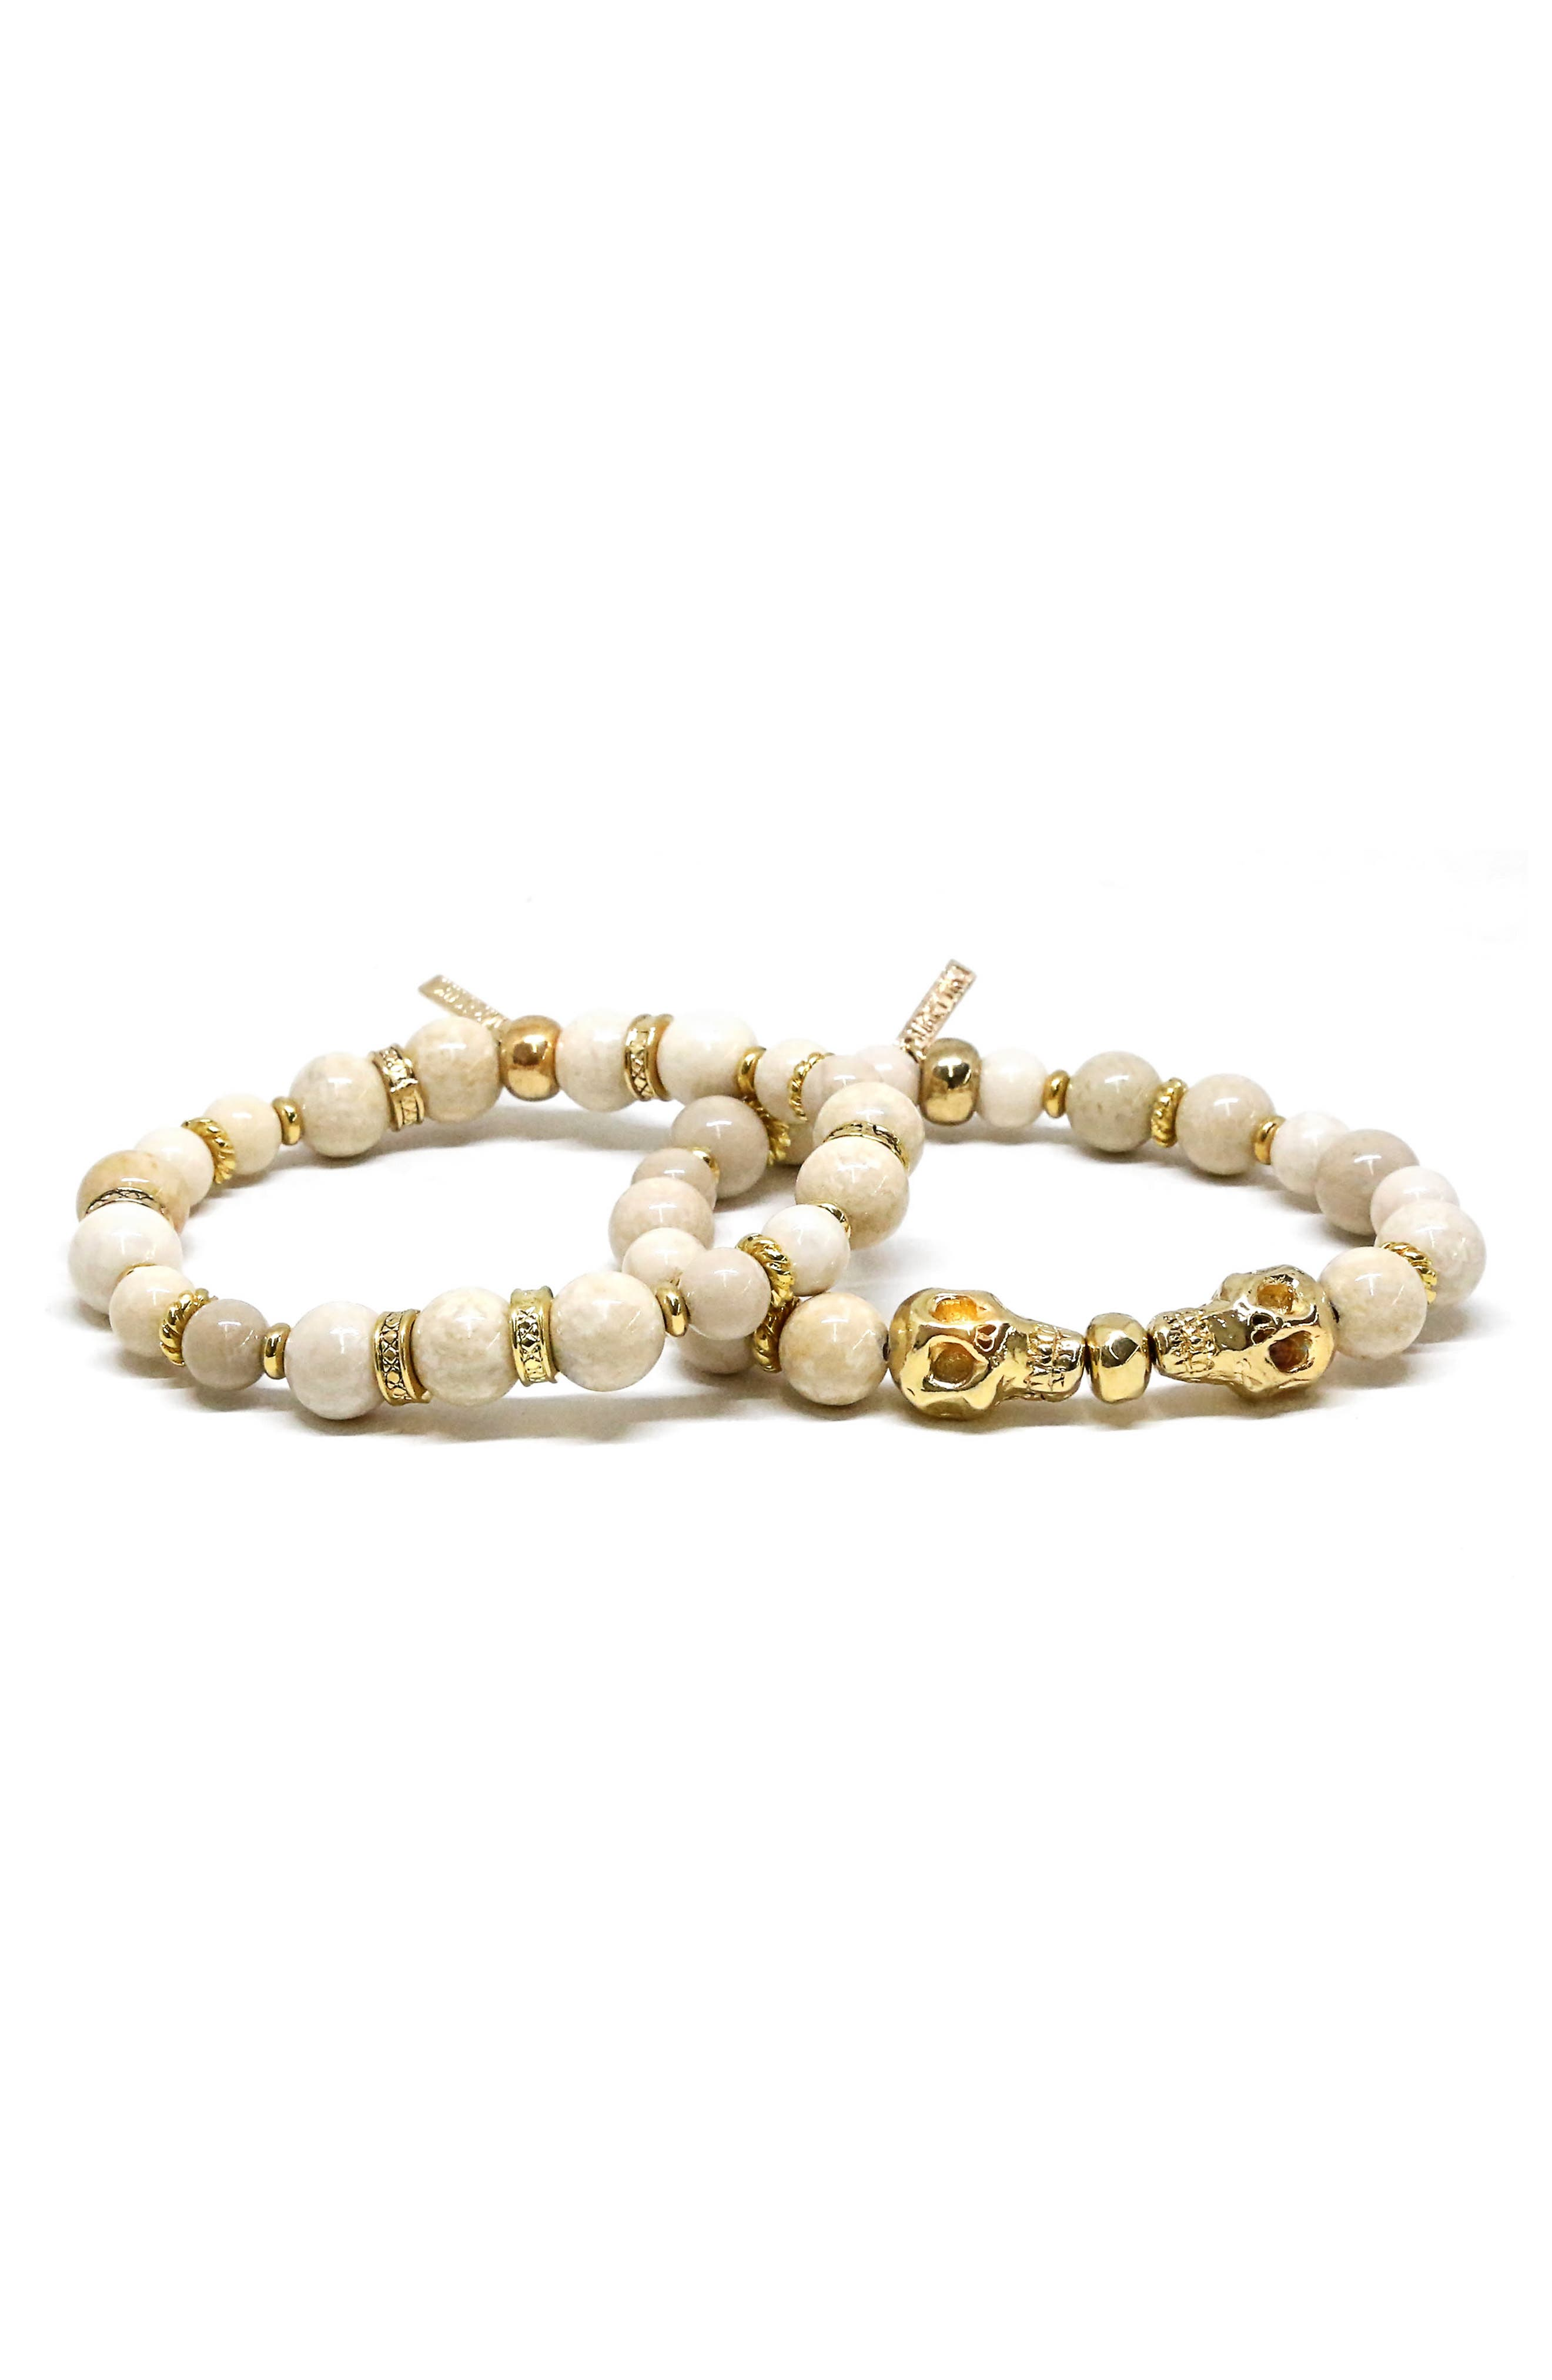 Textured golden accents and polished skull charms add intrigue to this set of bracelets featuring howlite beads, a mineral believed to alleviate stress. Style Name: Ettika Mr. Ettika Set Of 2 Howlite Skull Stretch Bracelets. Style Number: 6172941. Available in stores.